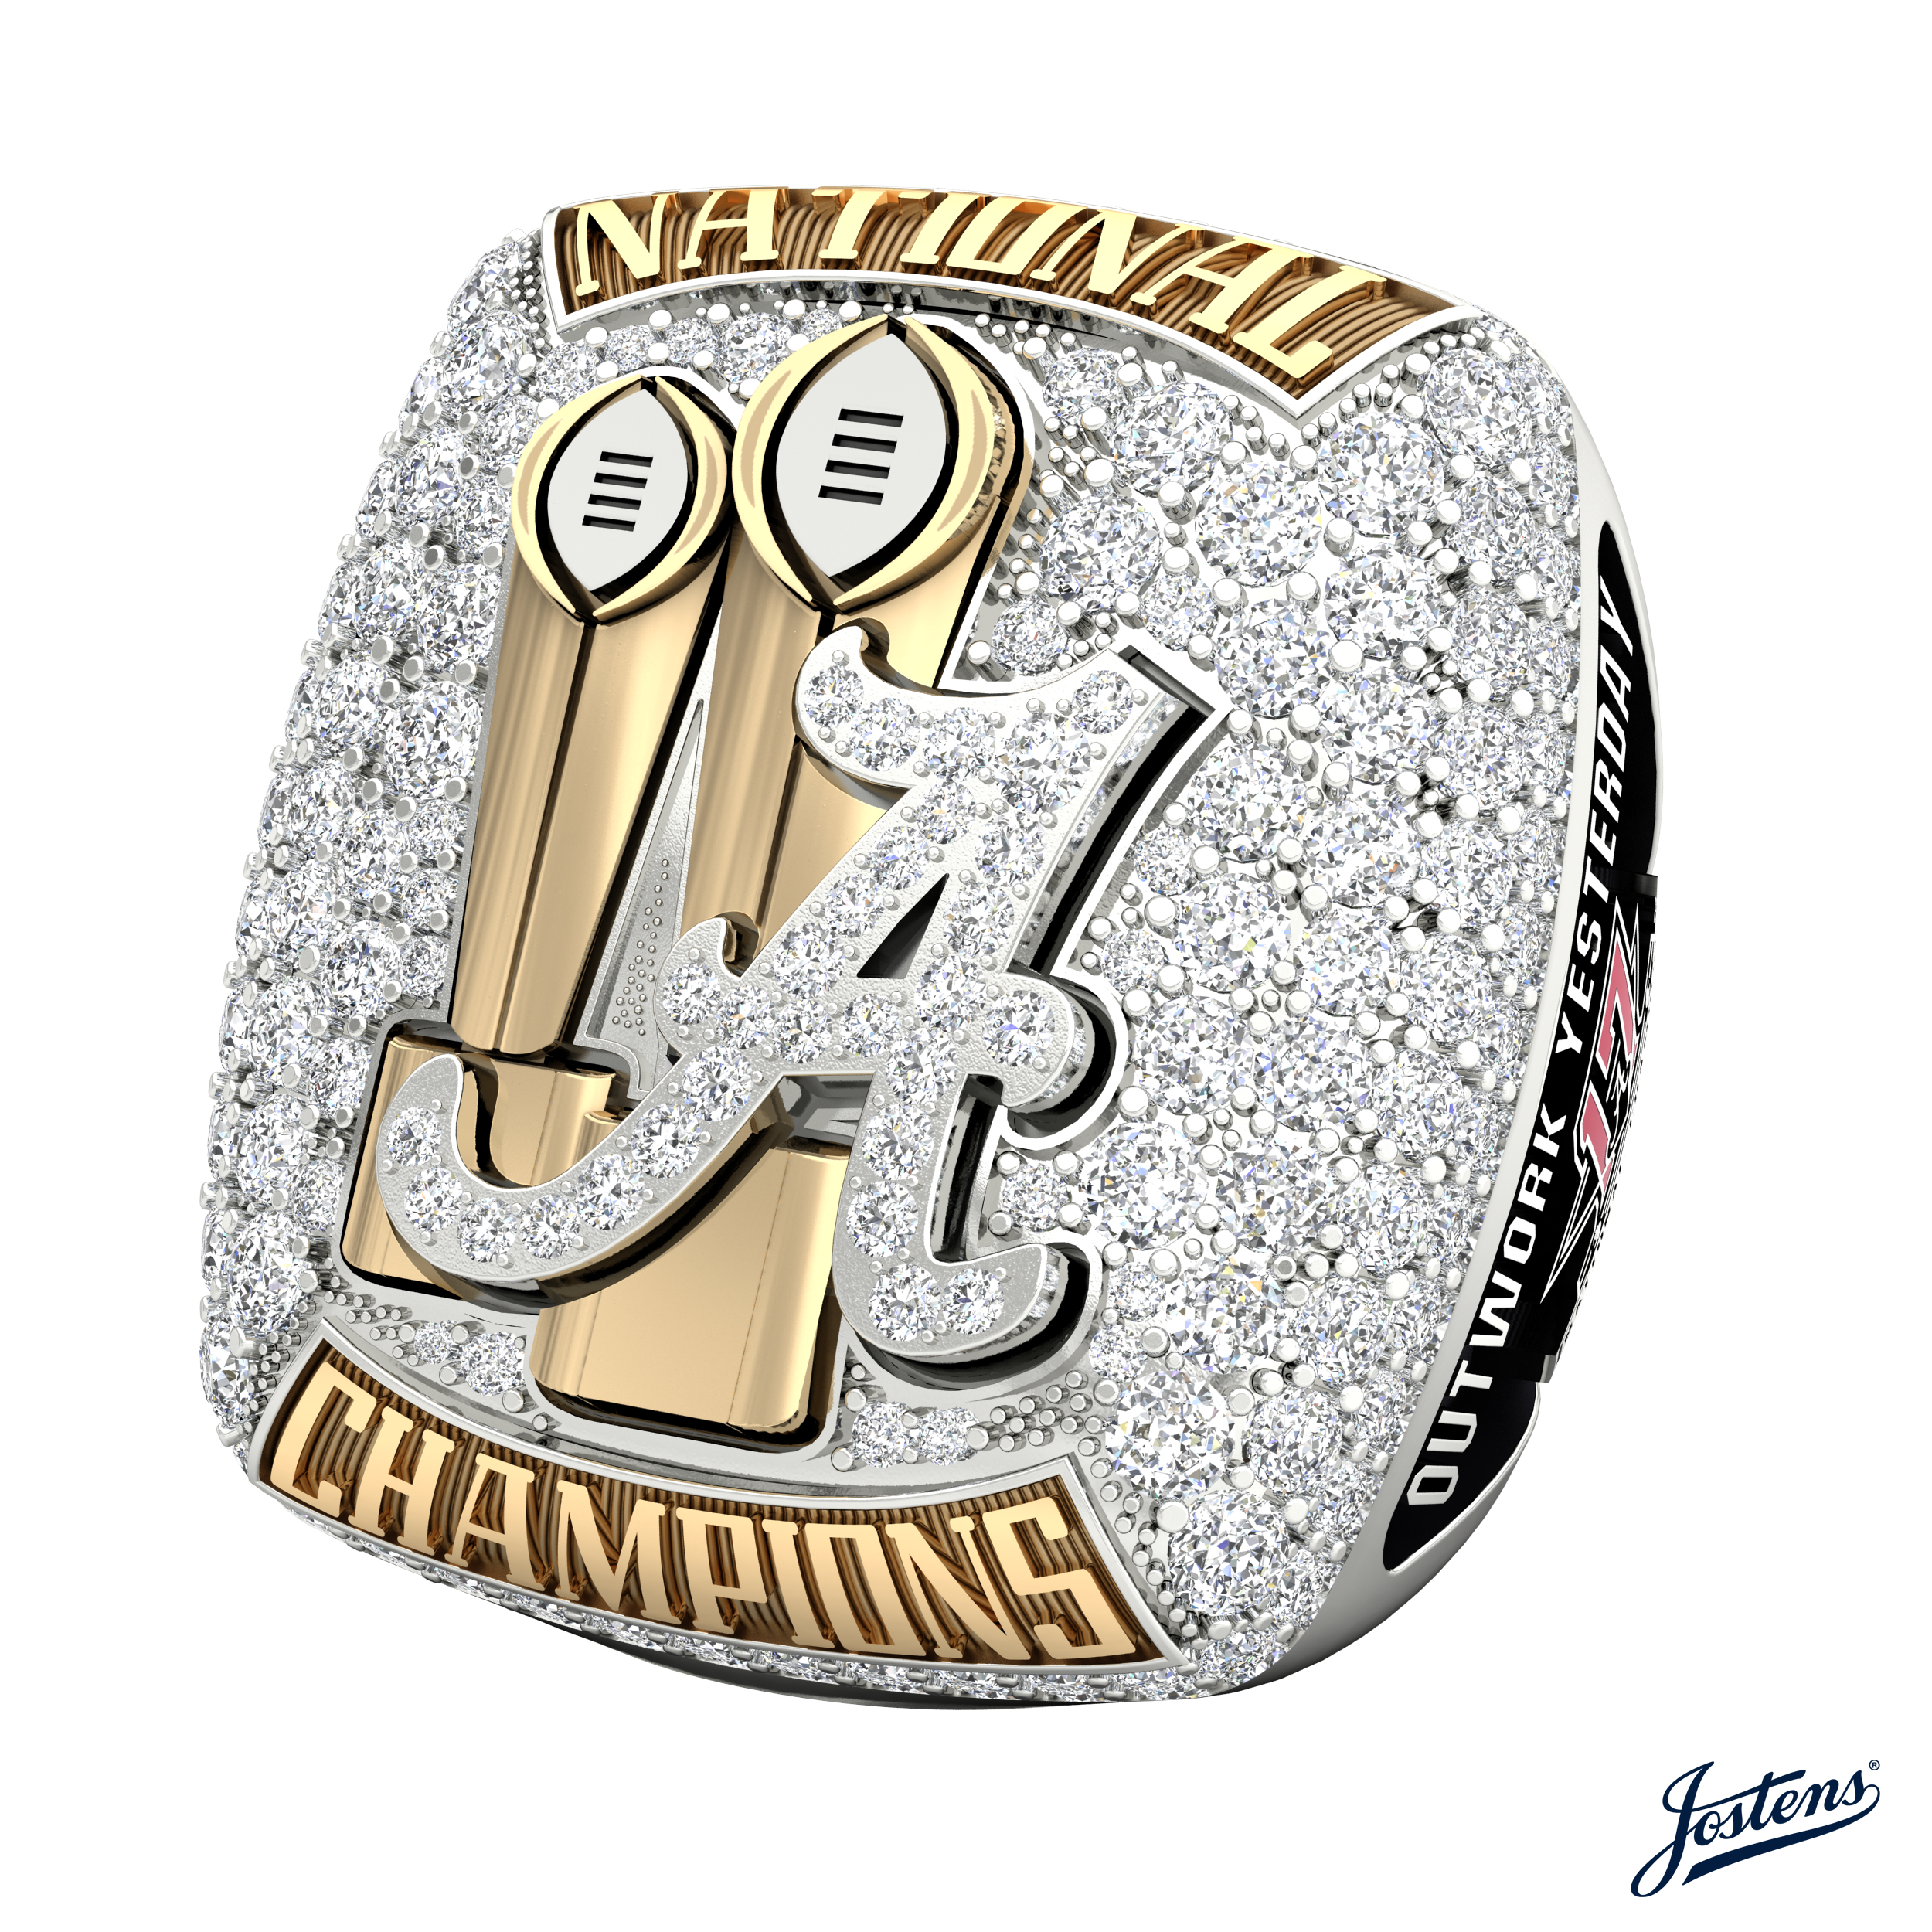 Alabama players received National Championship rings tonight